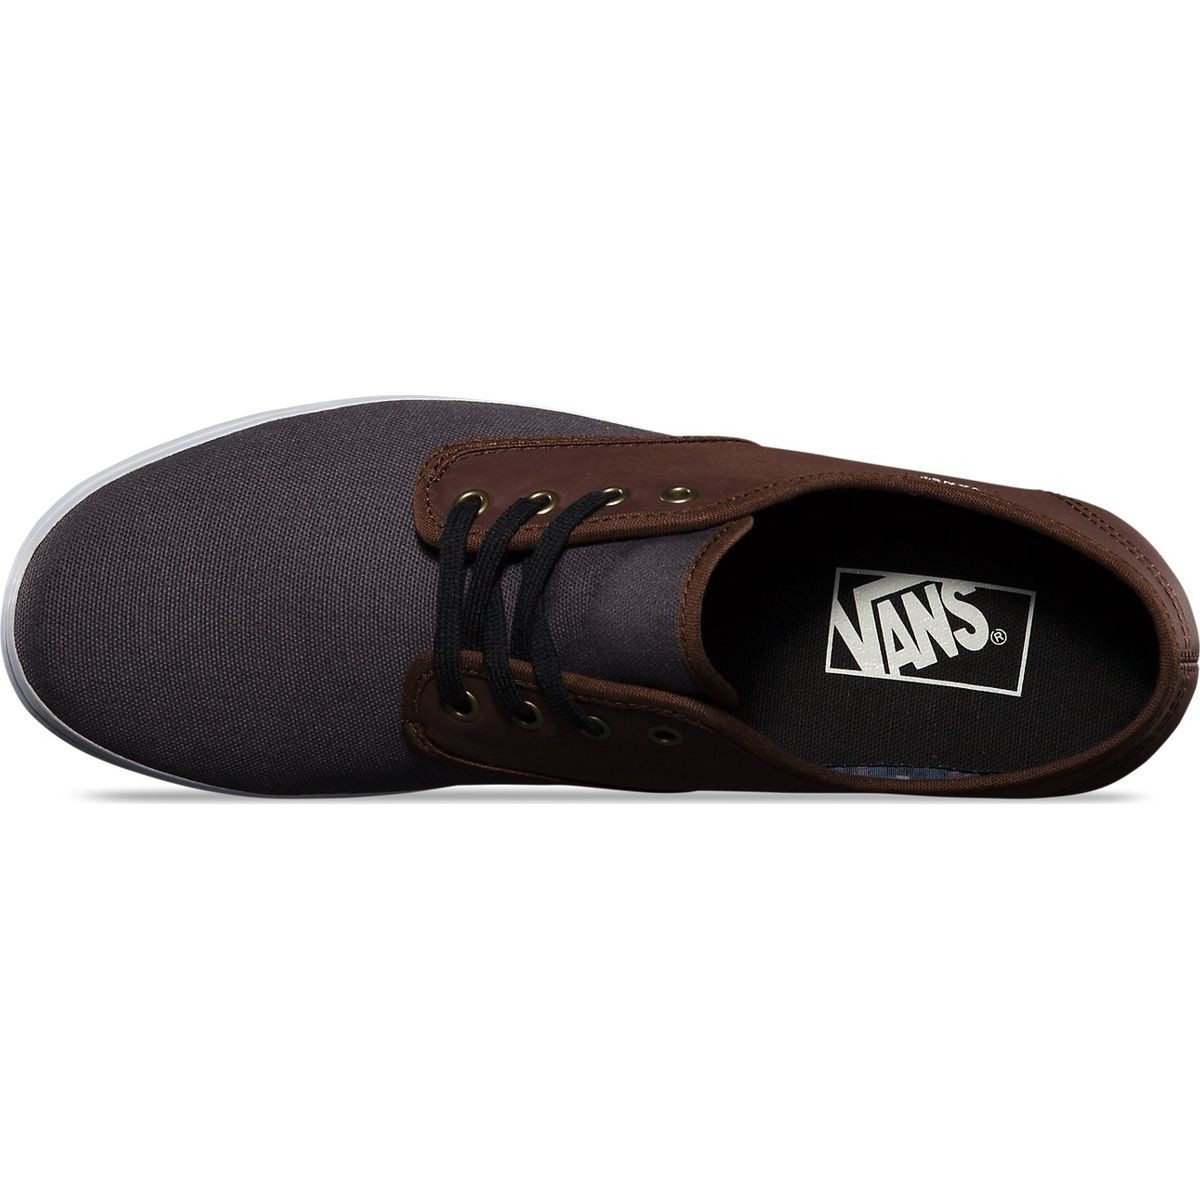 Vans C   L Madero Shoes - Magnet Leather - 13.0 f28c78f55e